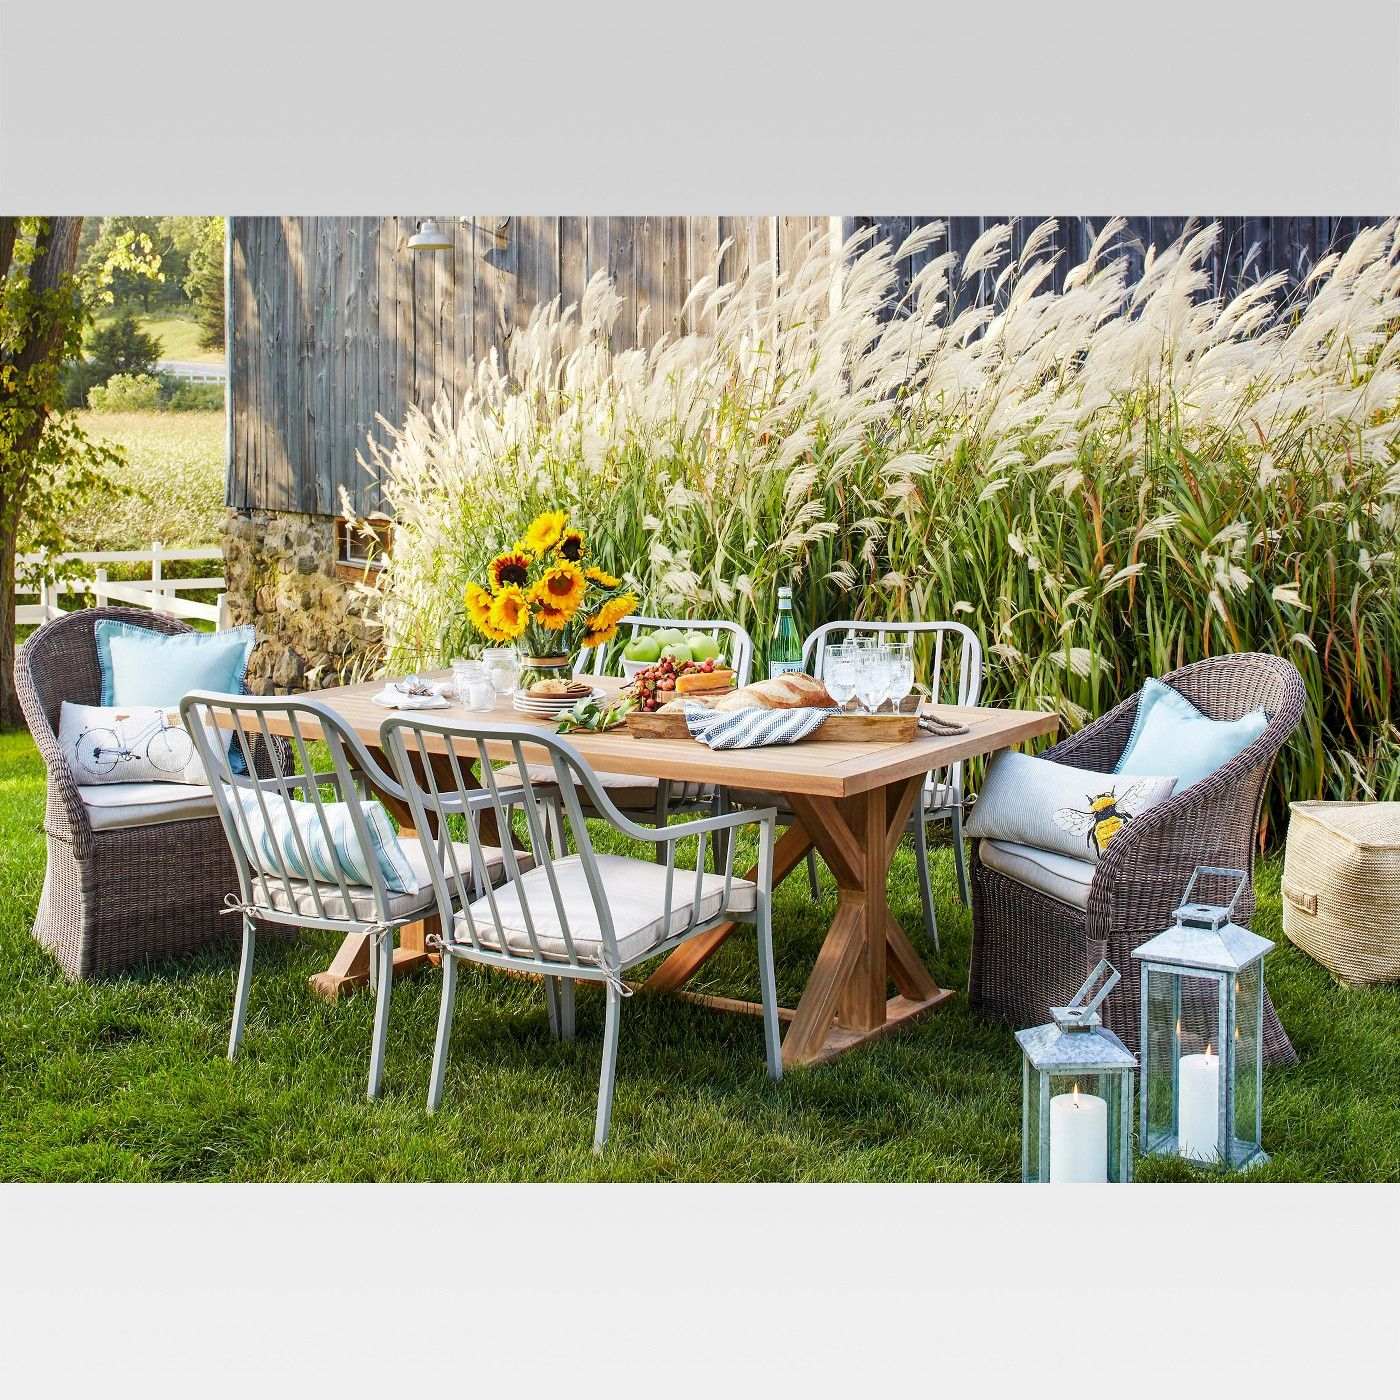 Morie Farmhouse Wood Outdoor Dining Table Threshold Image 4 Of 4 Target Outdoor Furniture Target Patio Furniture Outdoor Table Settings